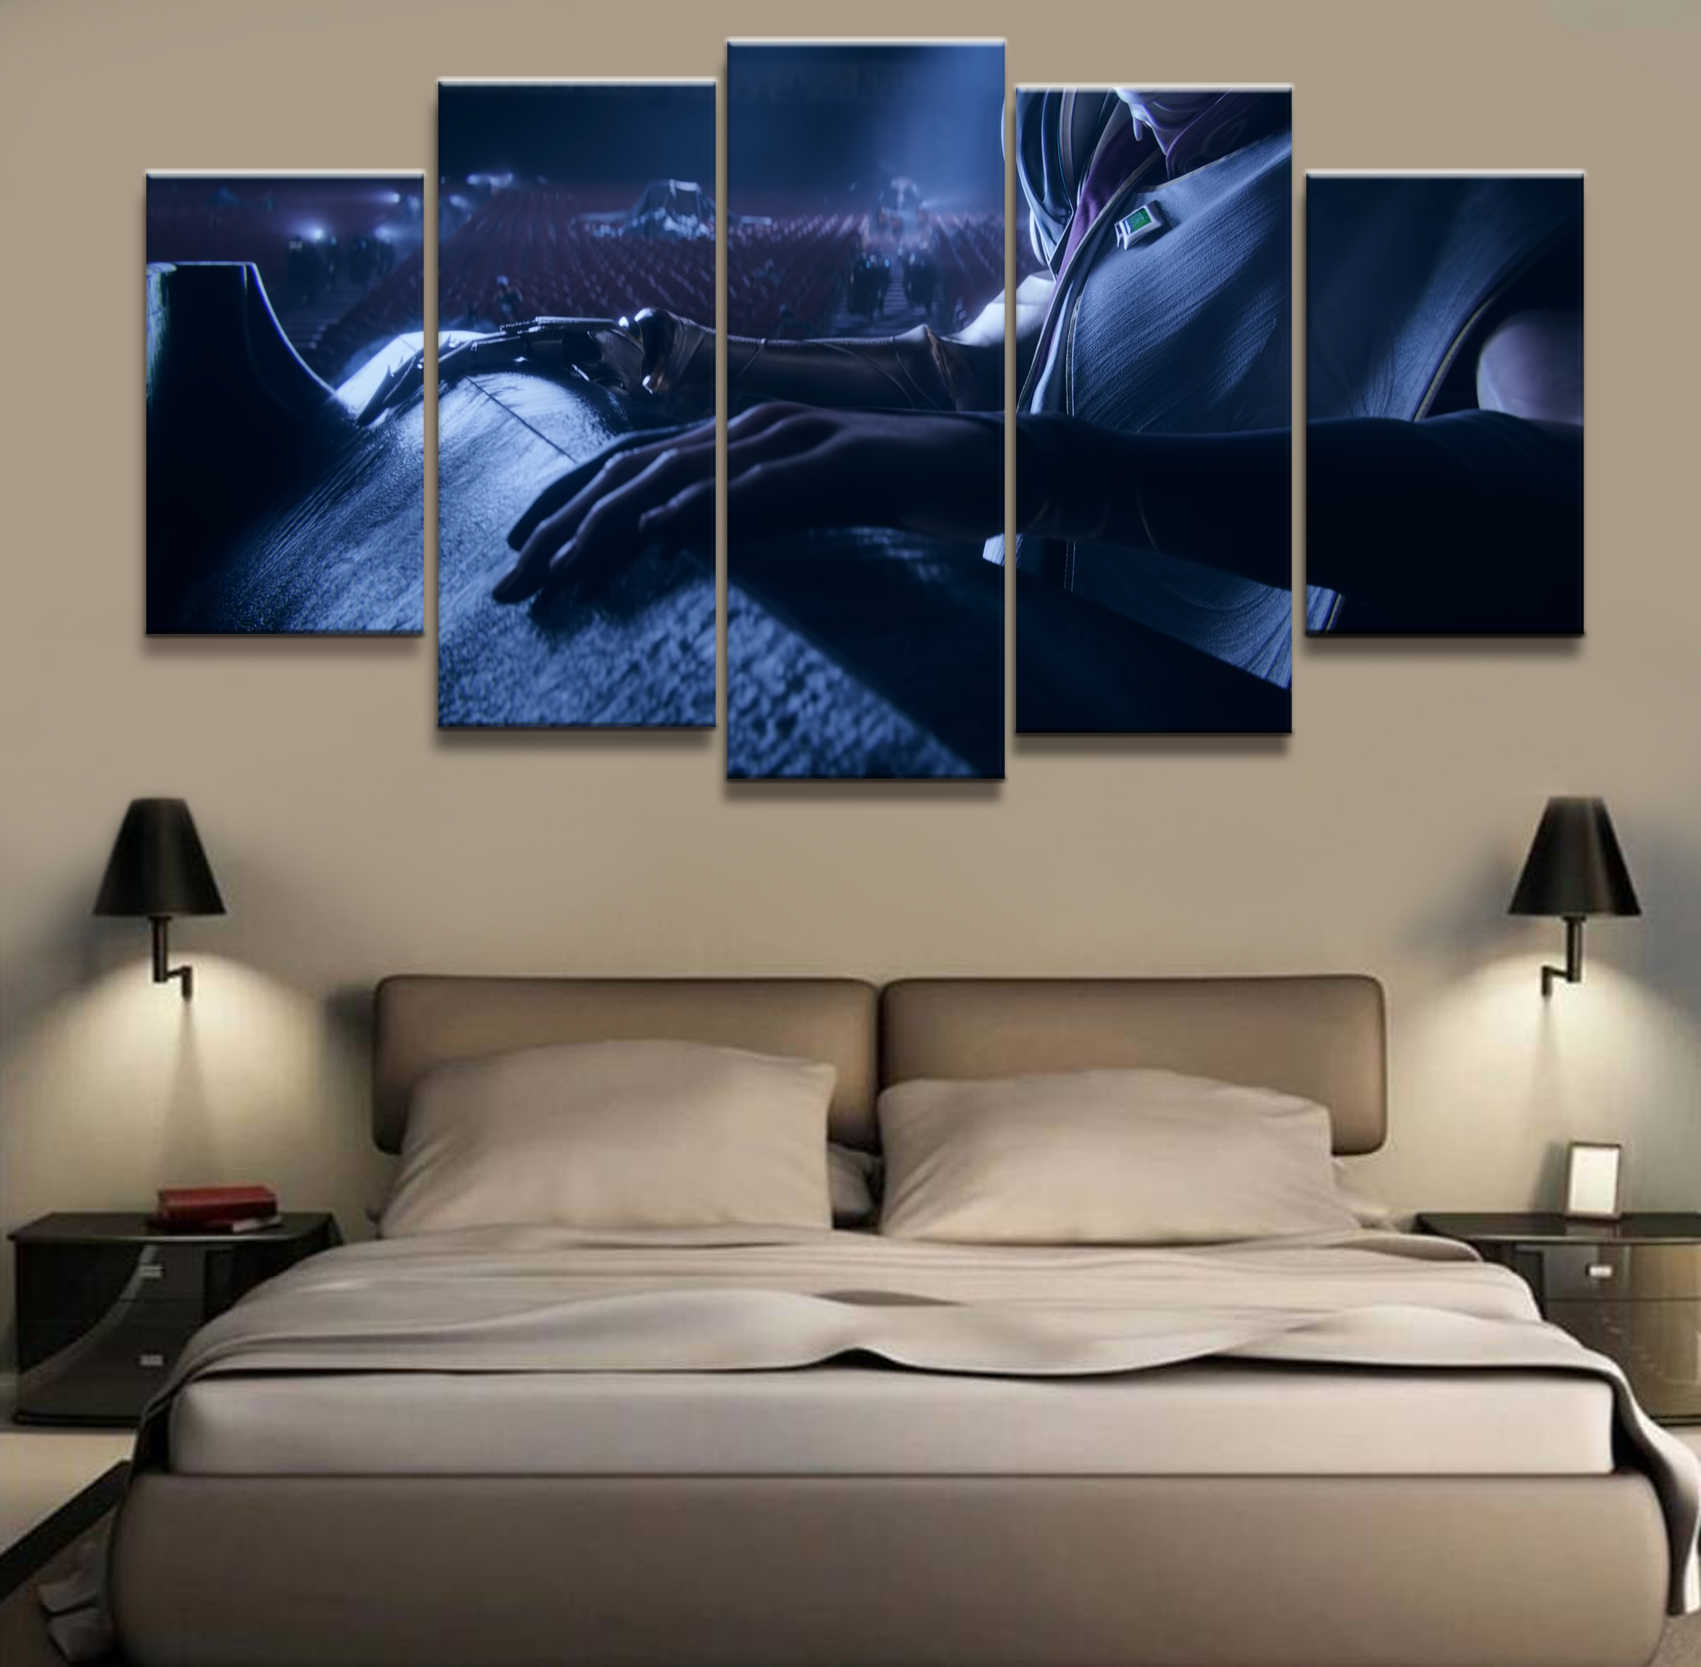 5 Panel Khada Jhin LOL League of Legends Game Canvas Printed Painting For Living Room Wall Art Decor HD Picture Works Poster